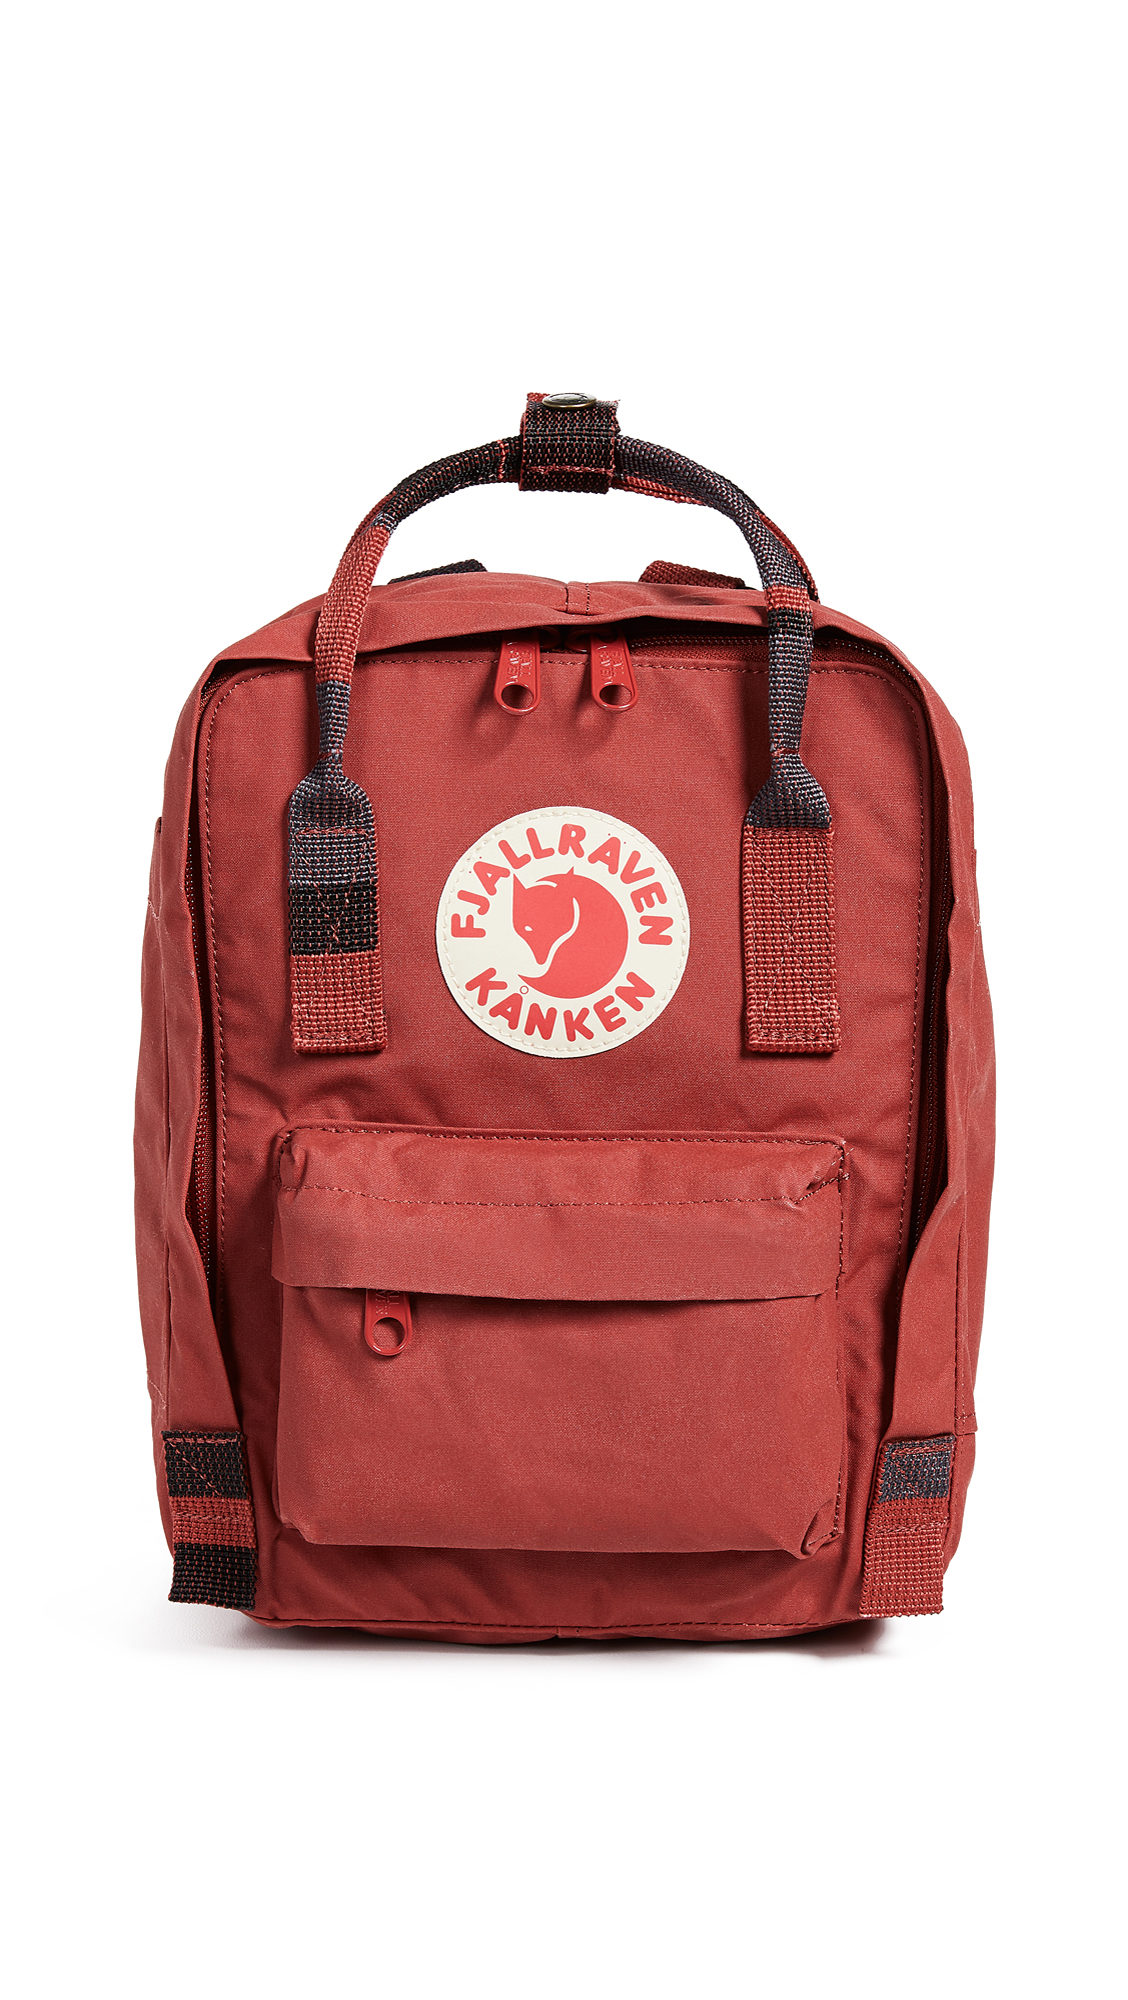 FJALL RAVEN Kanken Mini Backpack in Deep Red/Random Blocked